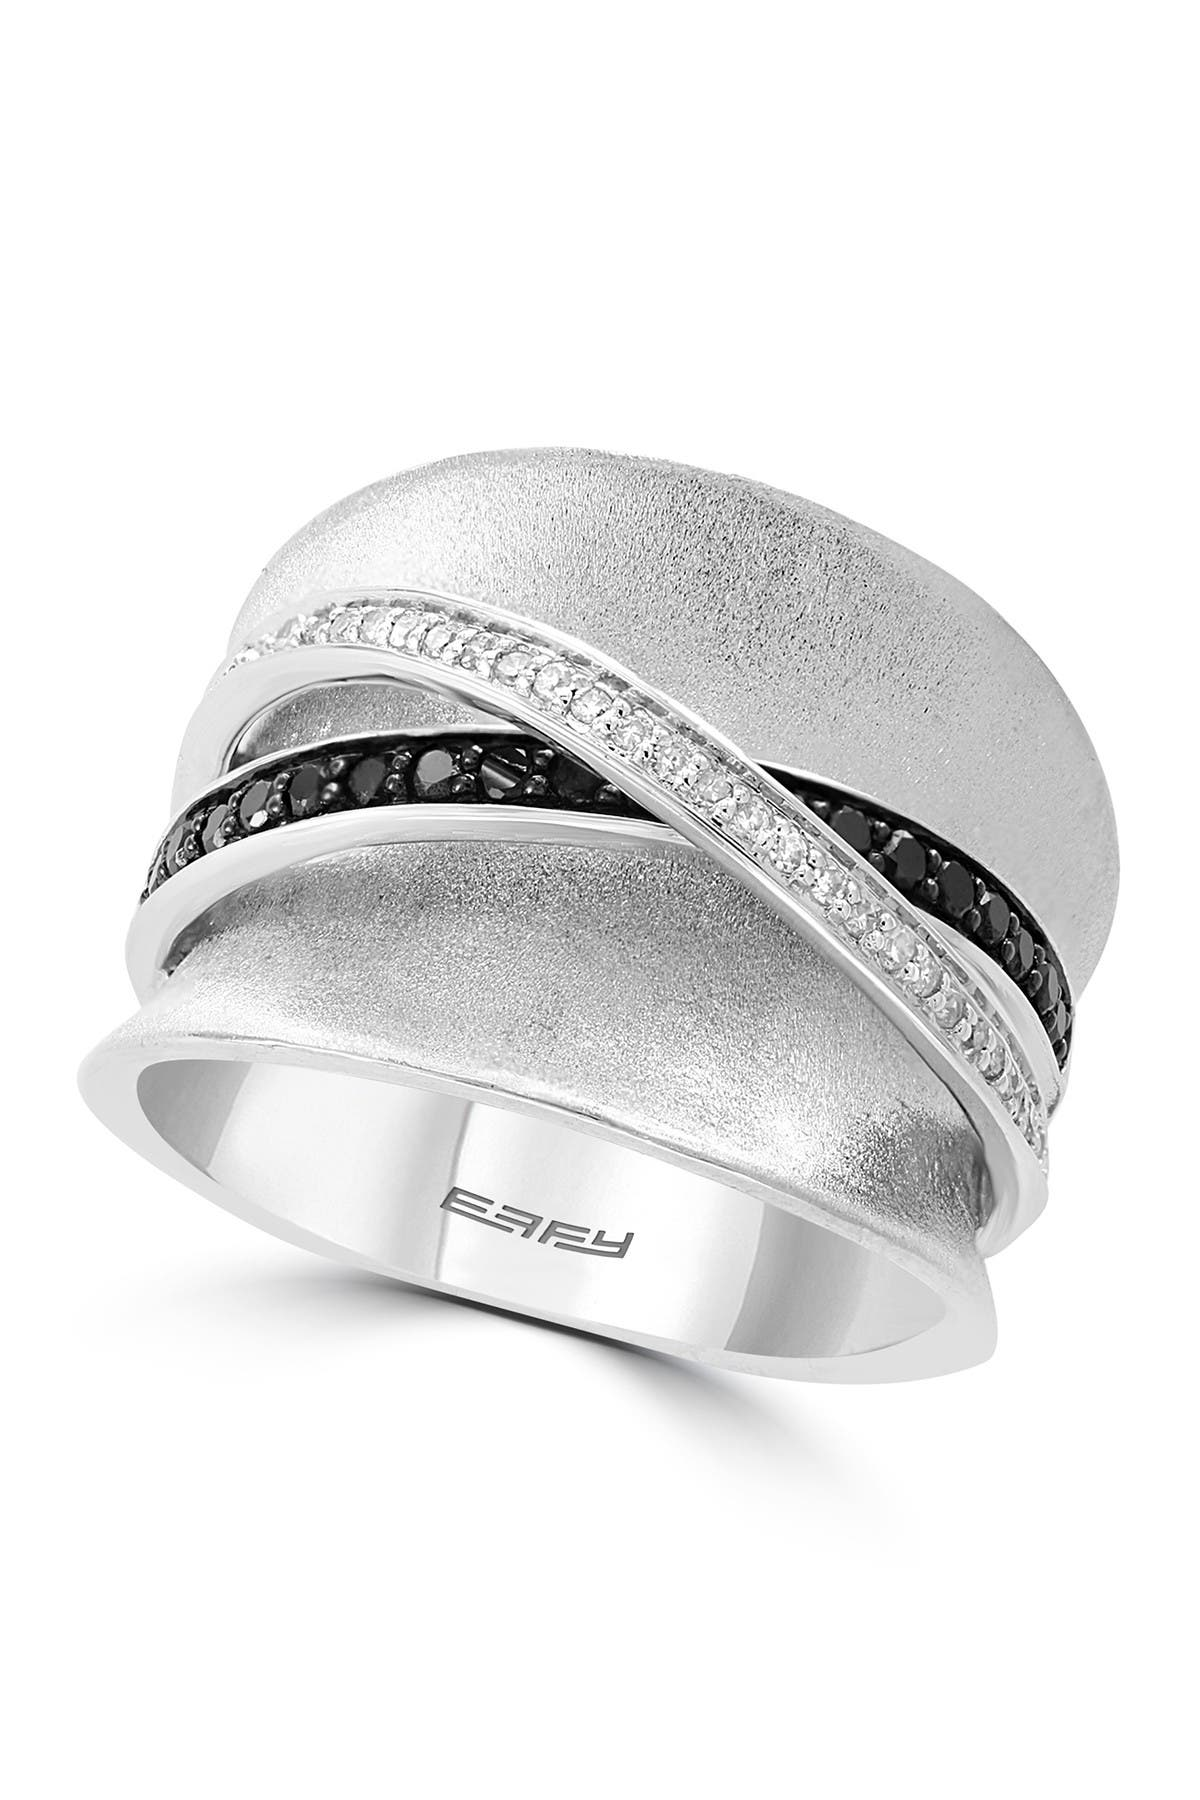 Image of Effy Sterling Silver Crisscross Pave Black & White Diamond Band Ring - Size 7 - 0.46 ctw